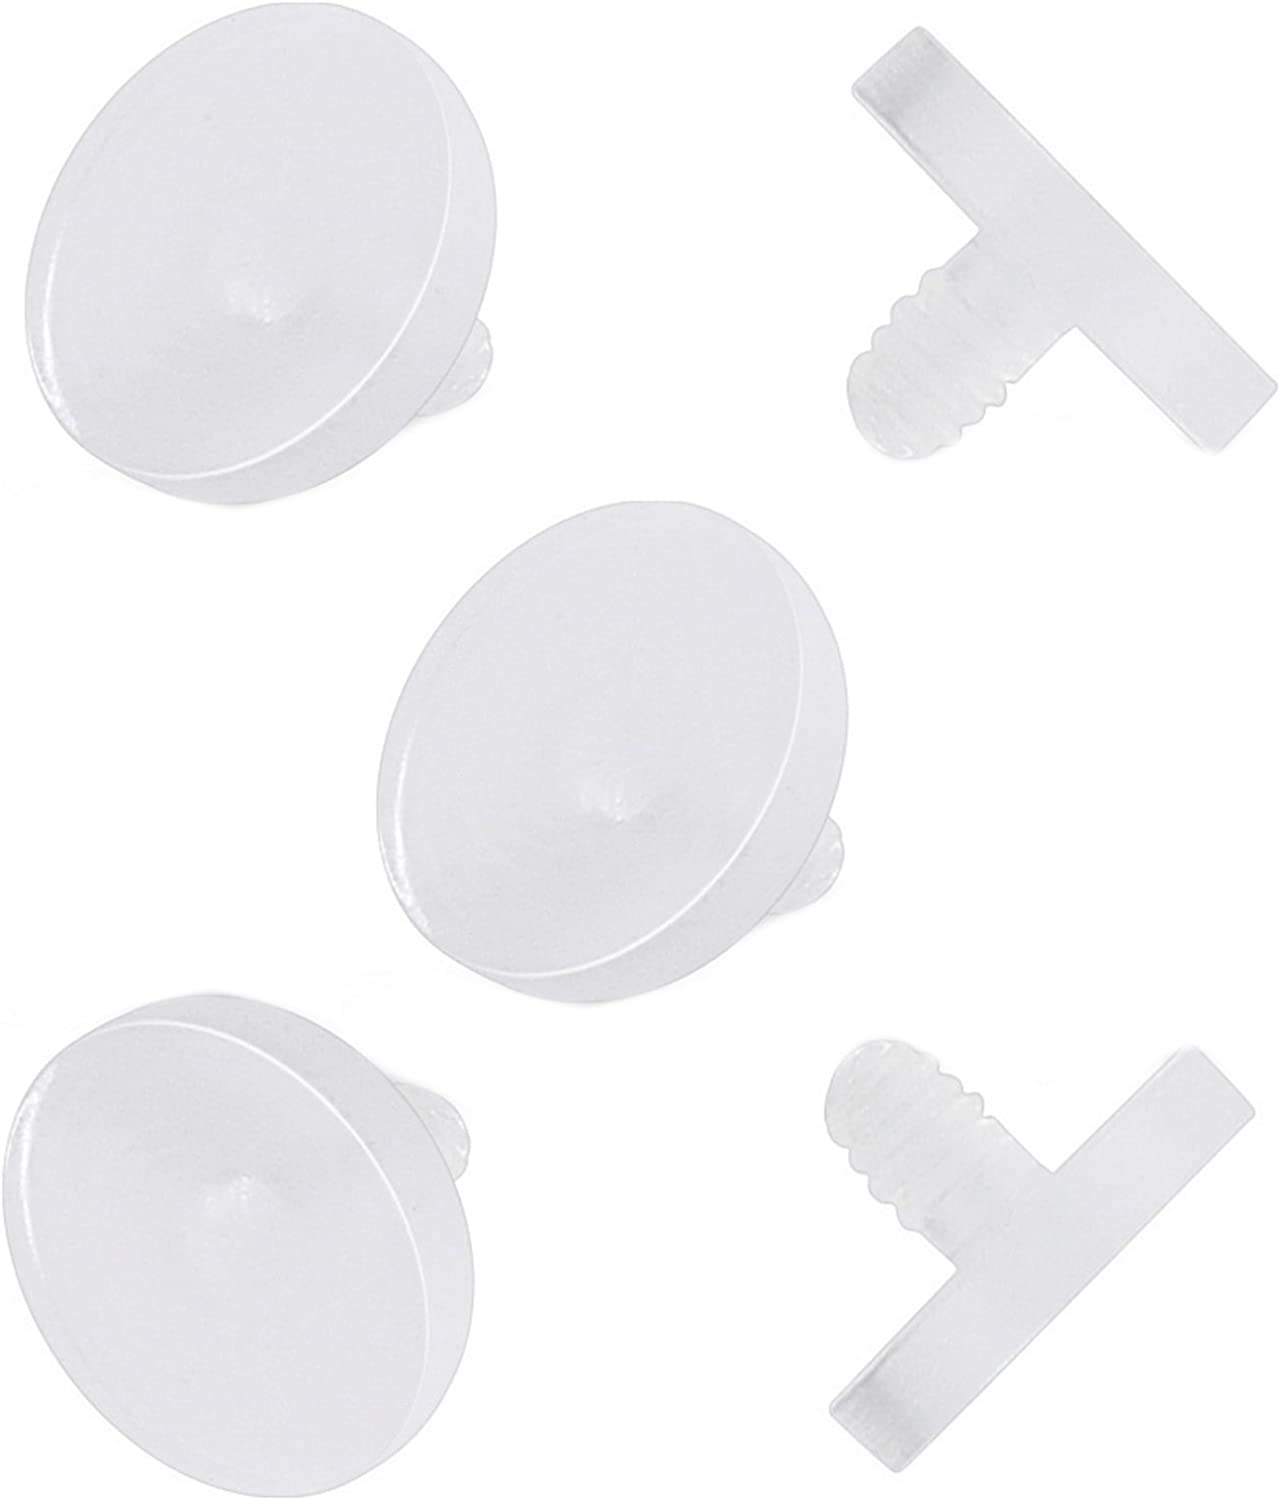 BYB Jewelry 5-Pack Clear Acrylic Dermal Top Retainers